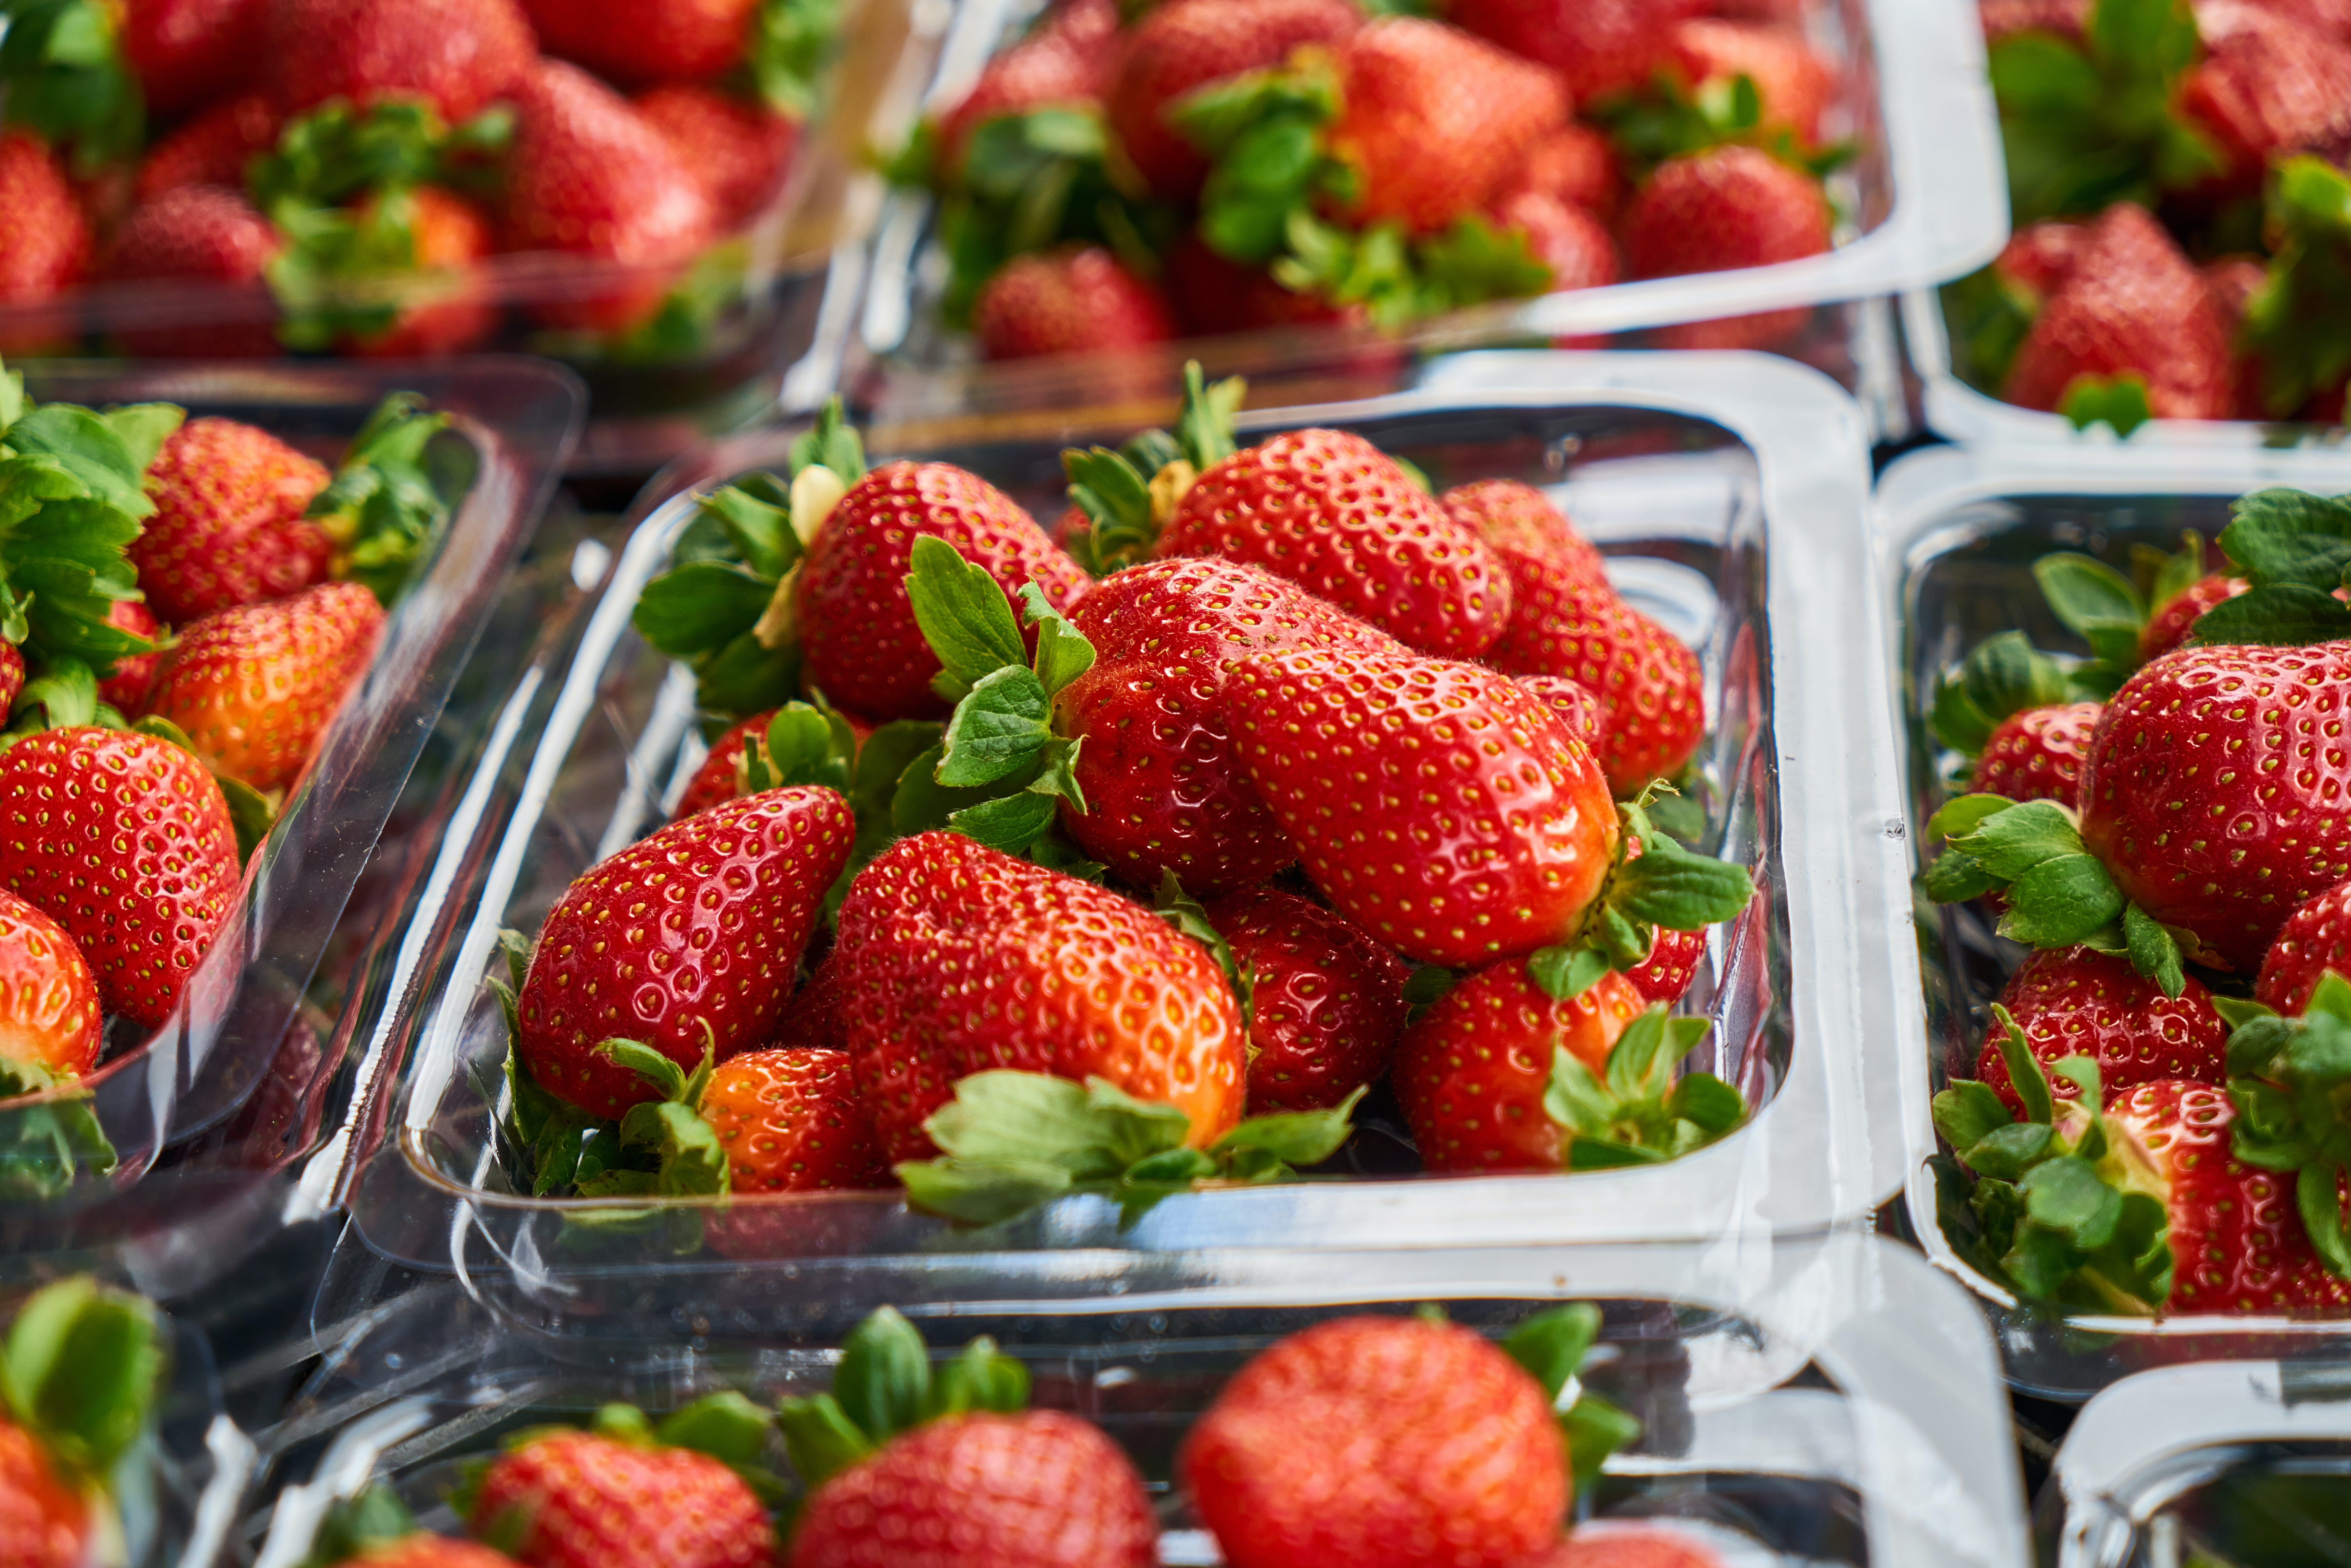 Close-Up Photography of Strawberries on Plastic Container